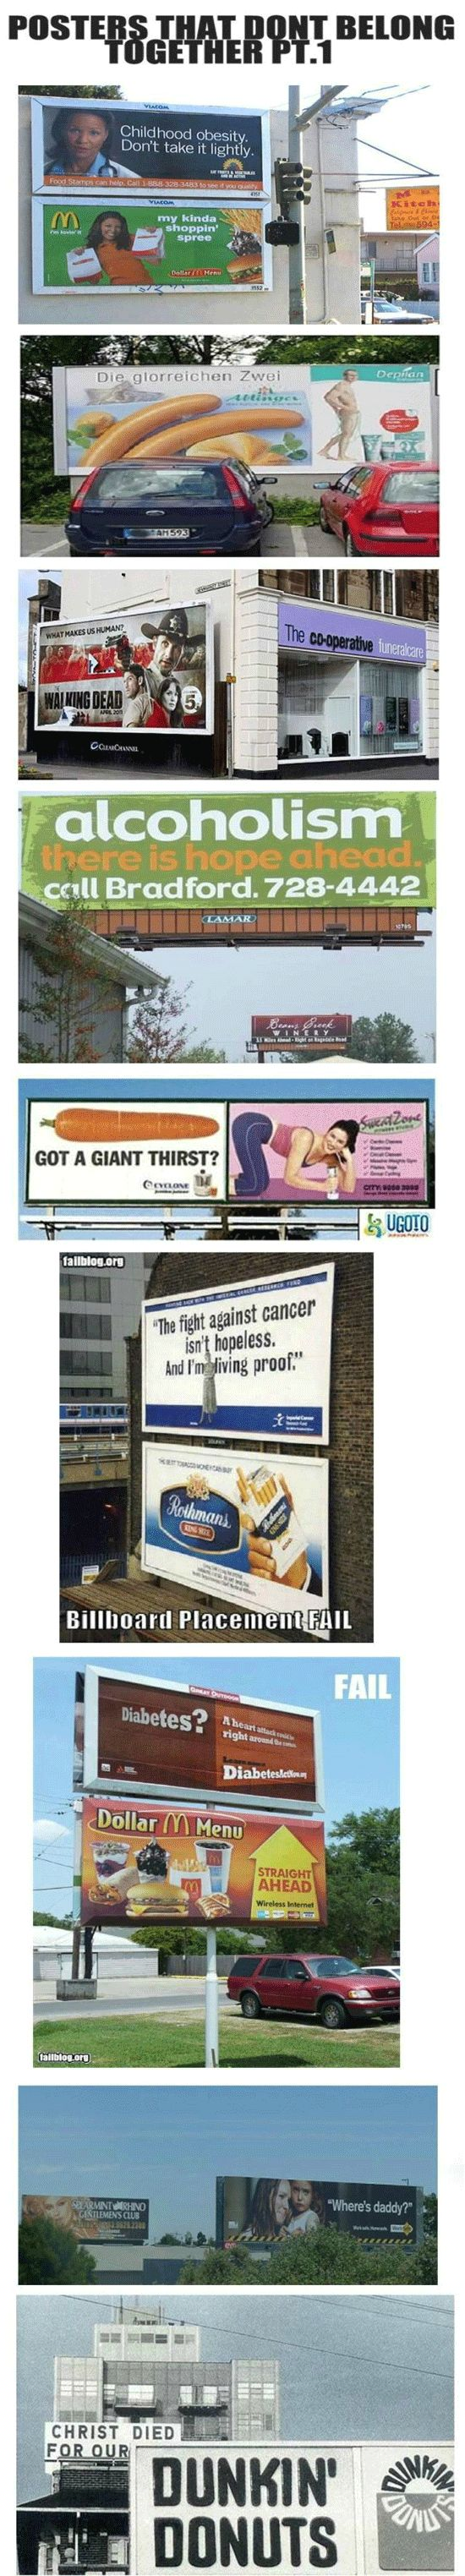 Hahaha, posters that DO NOT belong together.Picture-Black Posters, Advertising Fail, Advertising Placements, Funny Pictures, Fun Stuff, Billboard Fail, Funny Stuff, Christ The, Belong Together